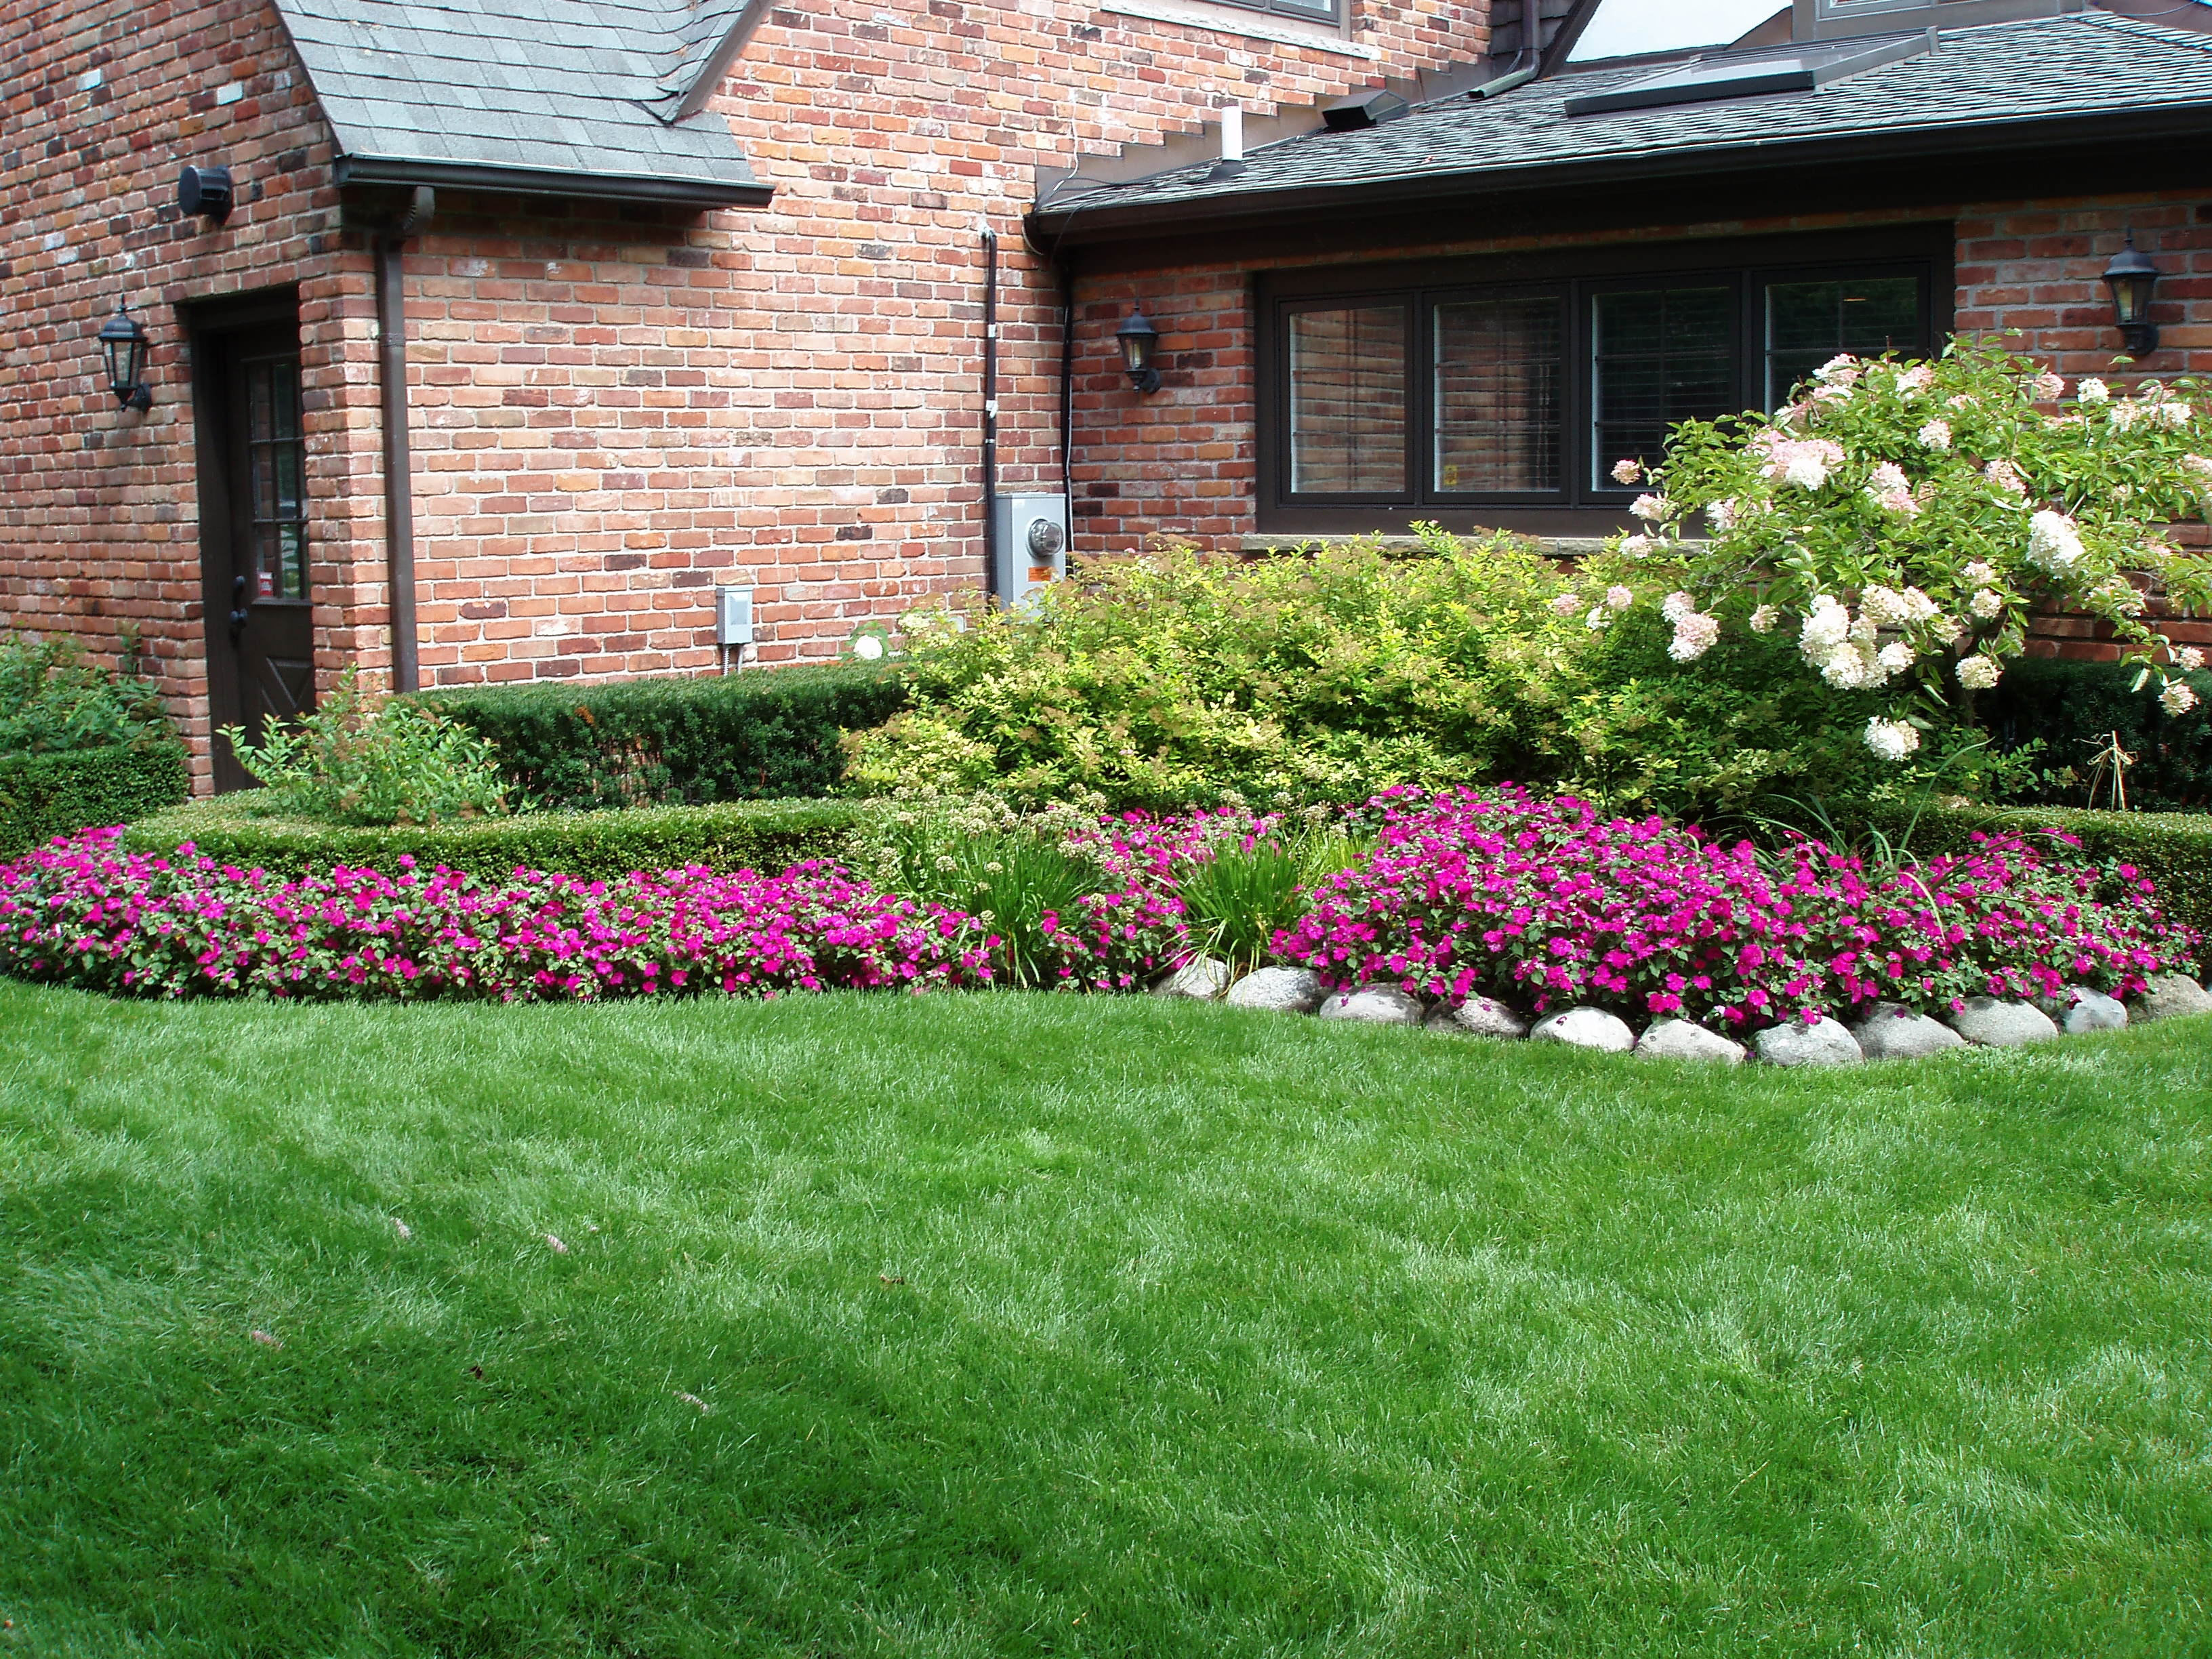 Perennials total lawn care inc full lawn maintenance for Yard landscaping